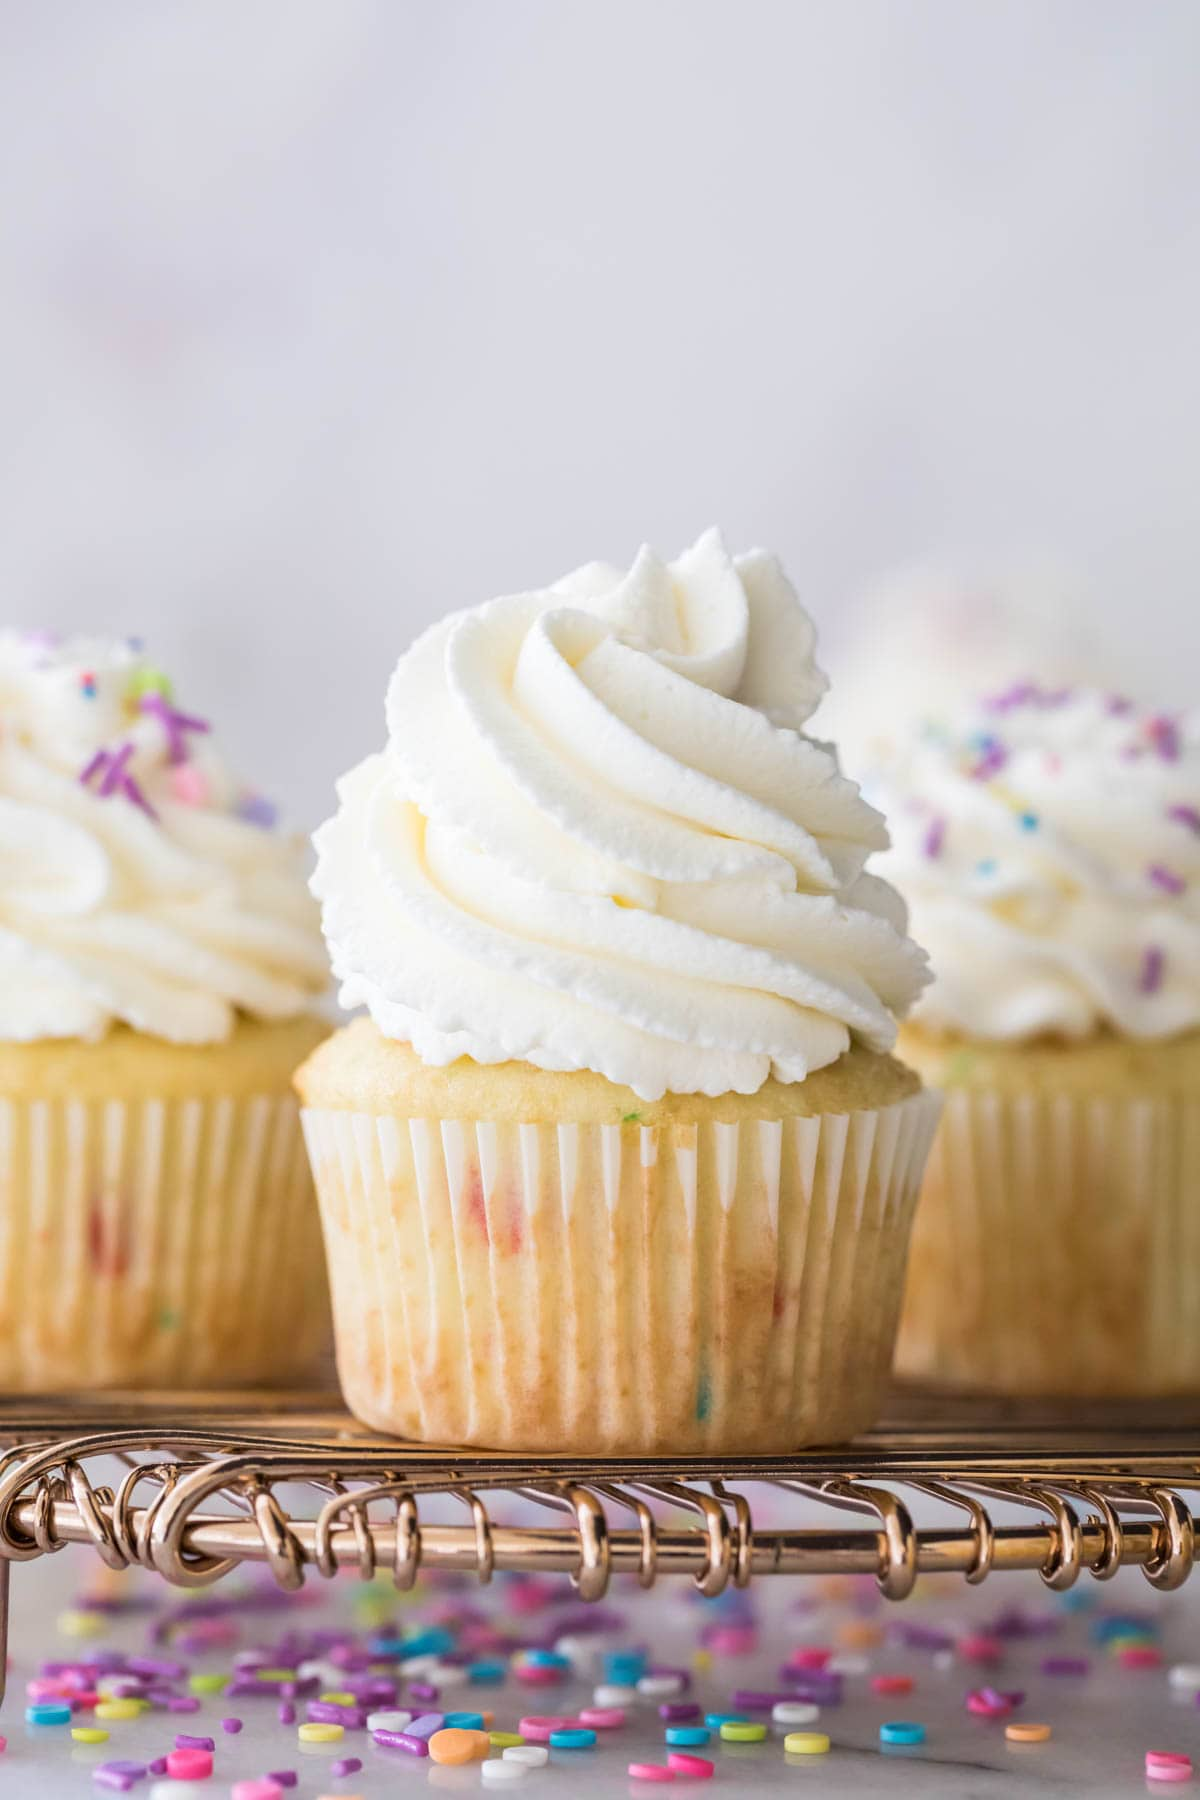 Closeup of cupcake with whipped cream frosting